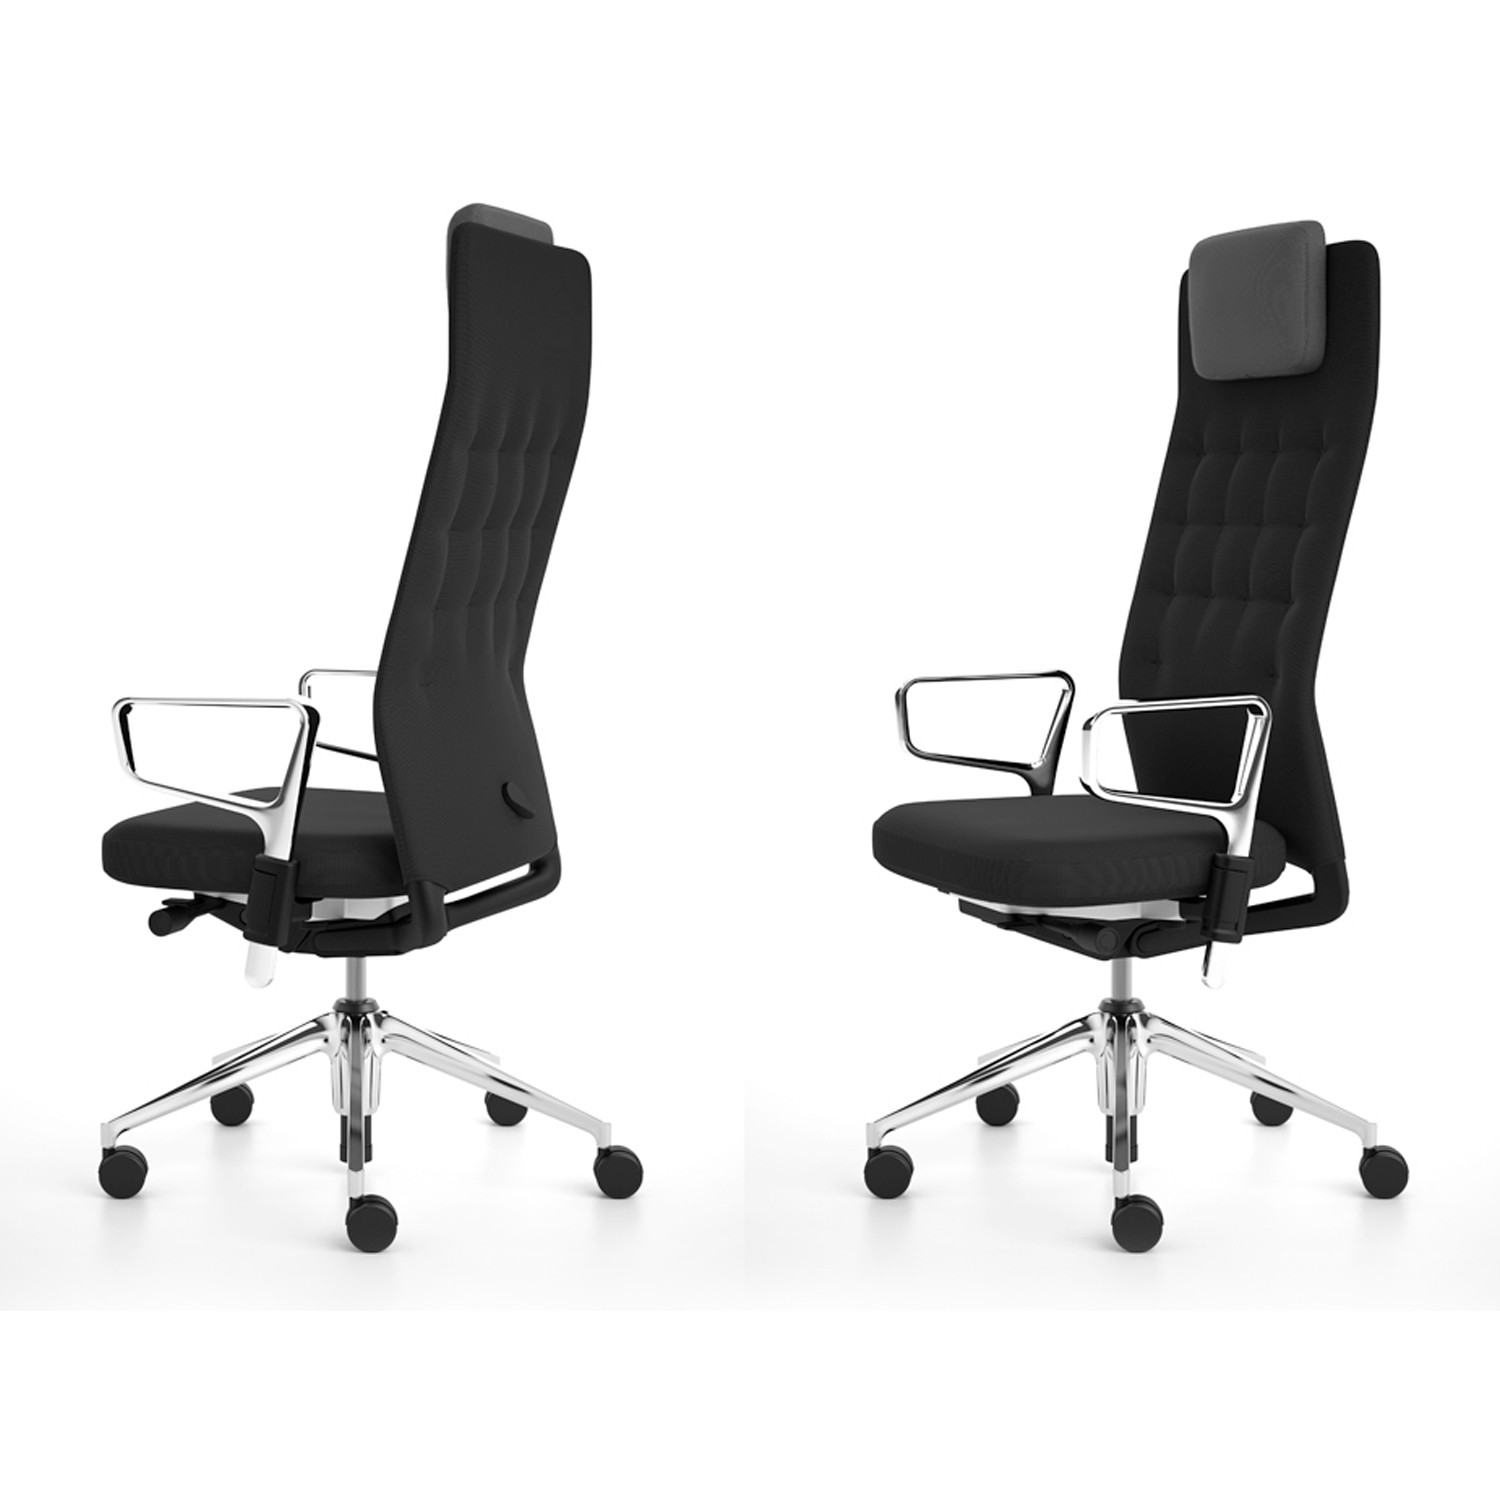 Vitra ID Trim L Office Chair